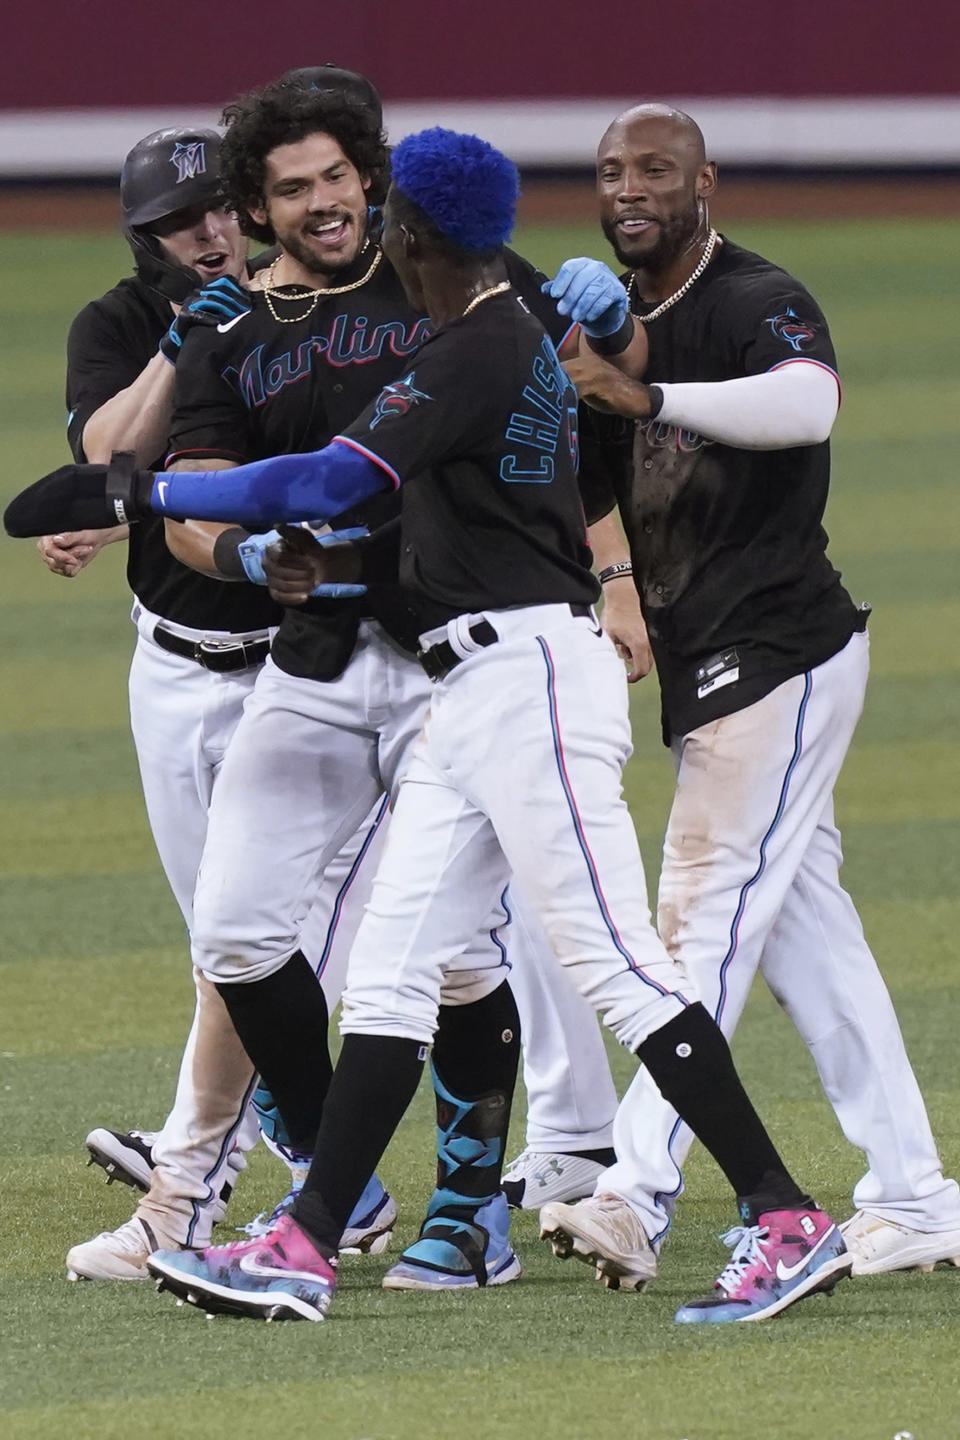 Miami Marlins' Jorge Alfaro, center, is congratulated after he hit a double to drive in the winning run in the 10th inning of the team's baseball game against the San Francisco Giants, Saturday, April 17, 2021, in Miami. The Marlins won 7-6. (AP Photo/Marta Lavandier)